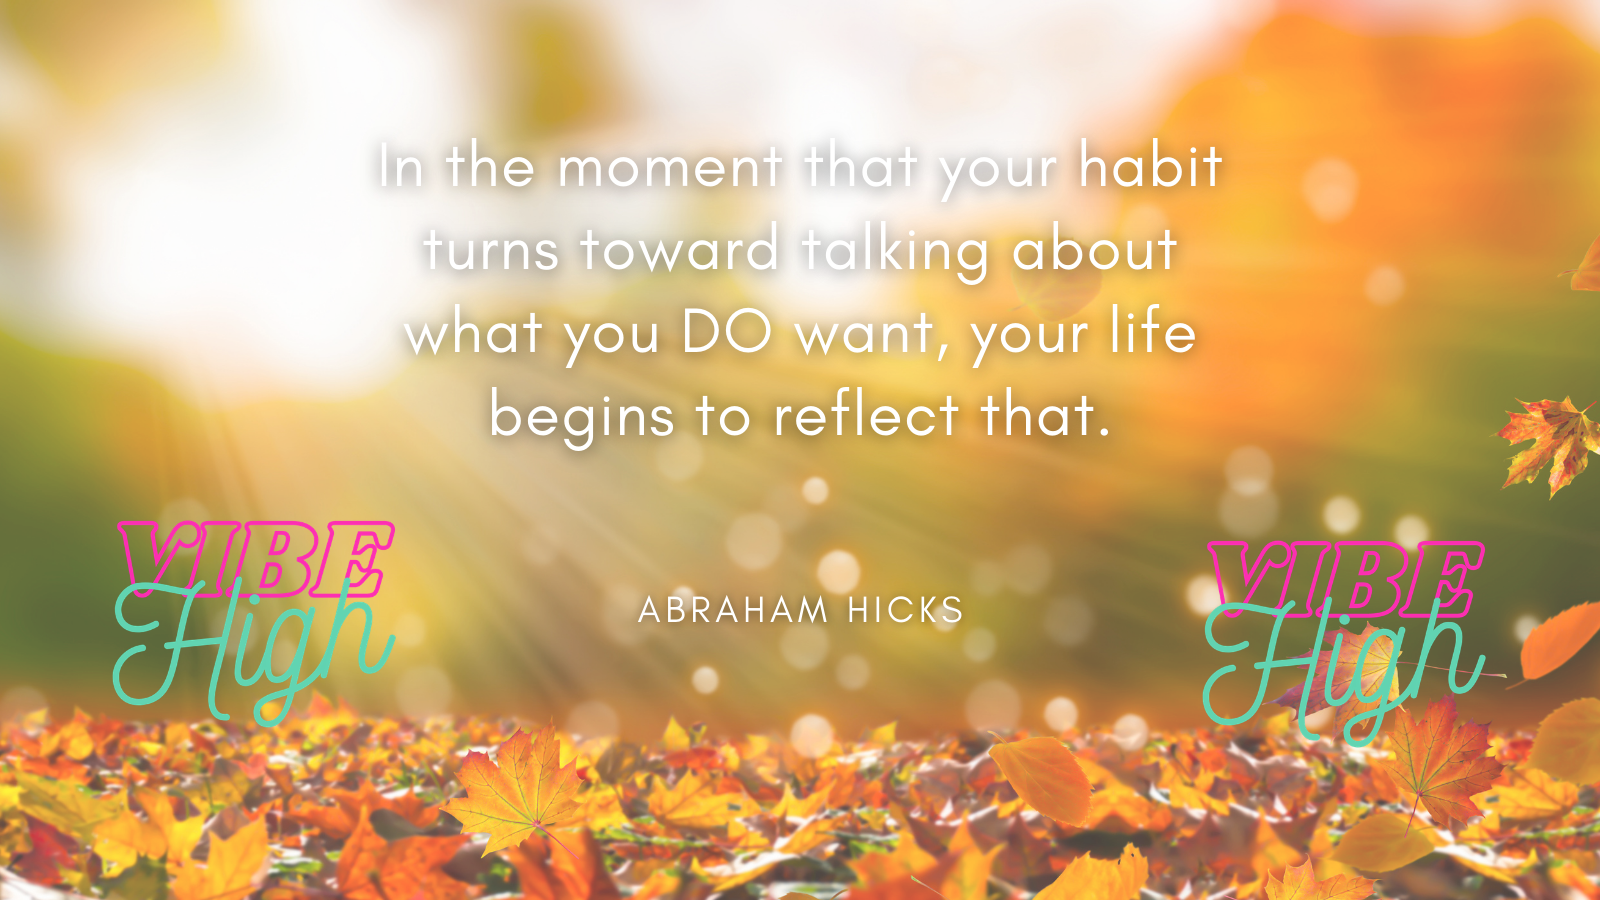 Abraham Hicks – In the moment that your habit turns toward talking about what you DO want, your life begins to reflect that. [1600×900]